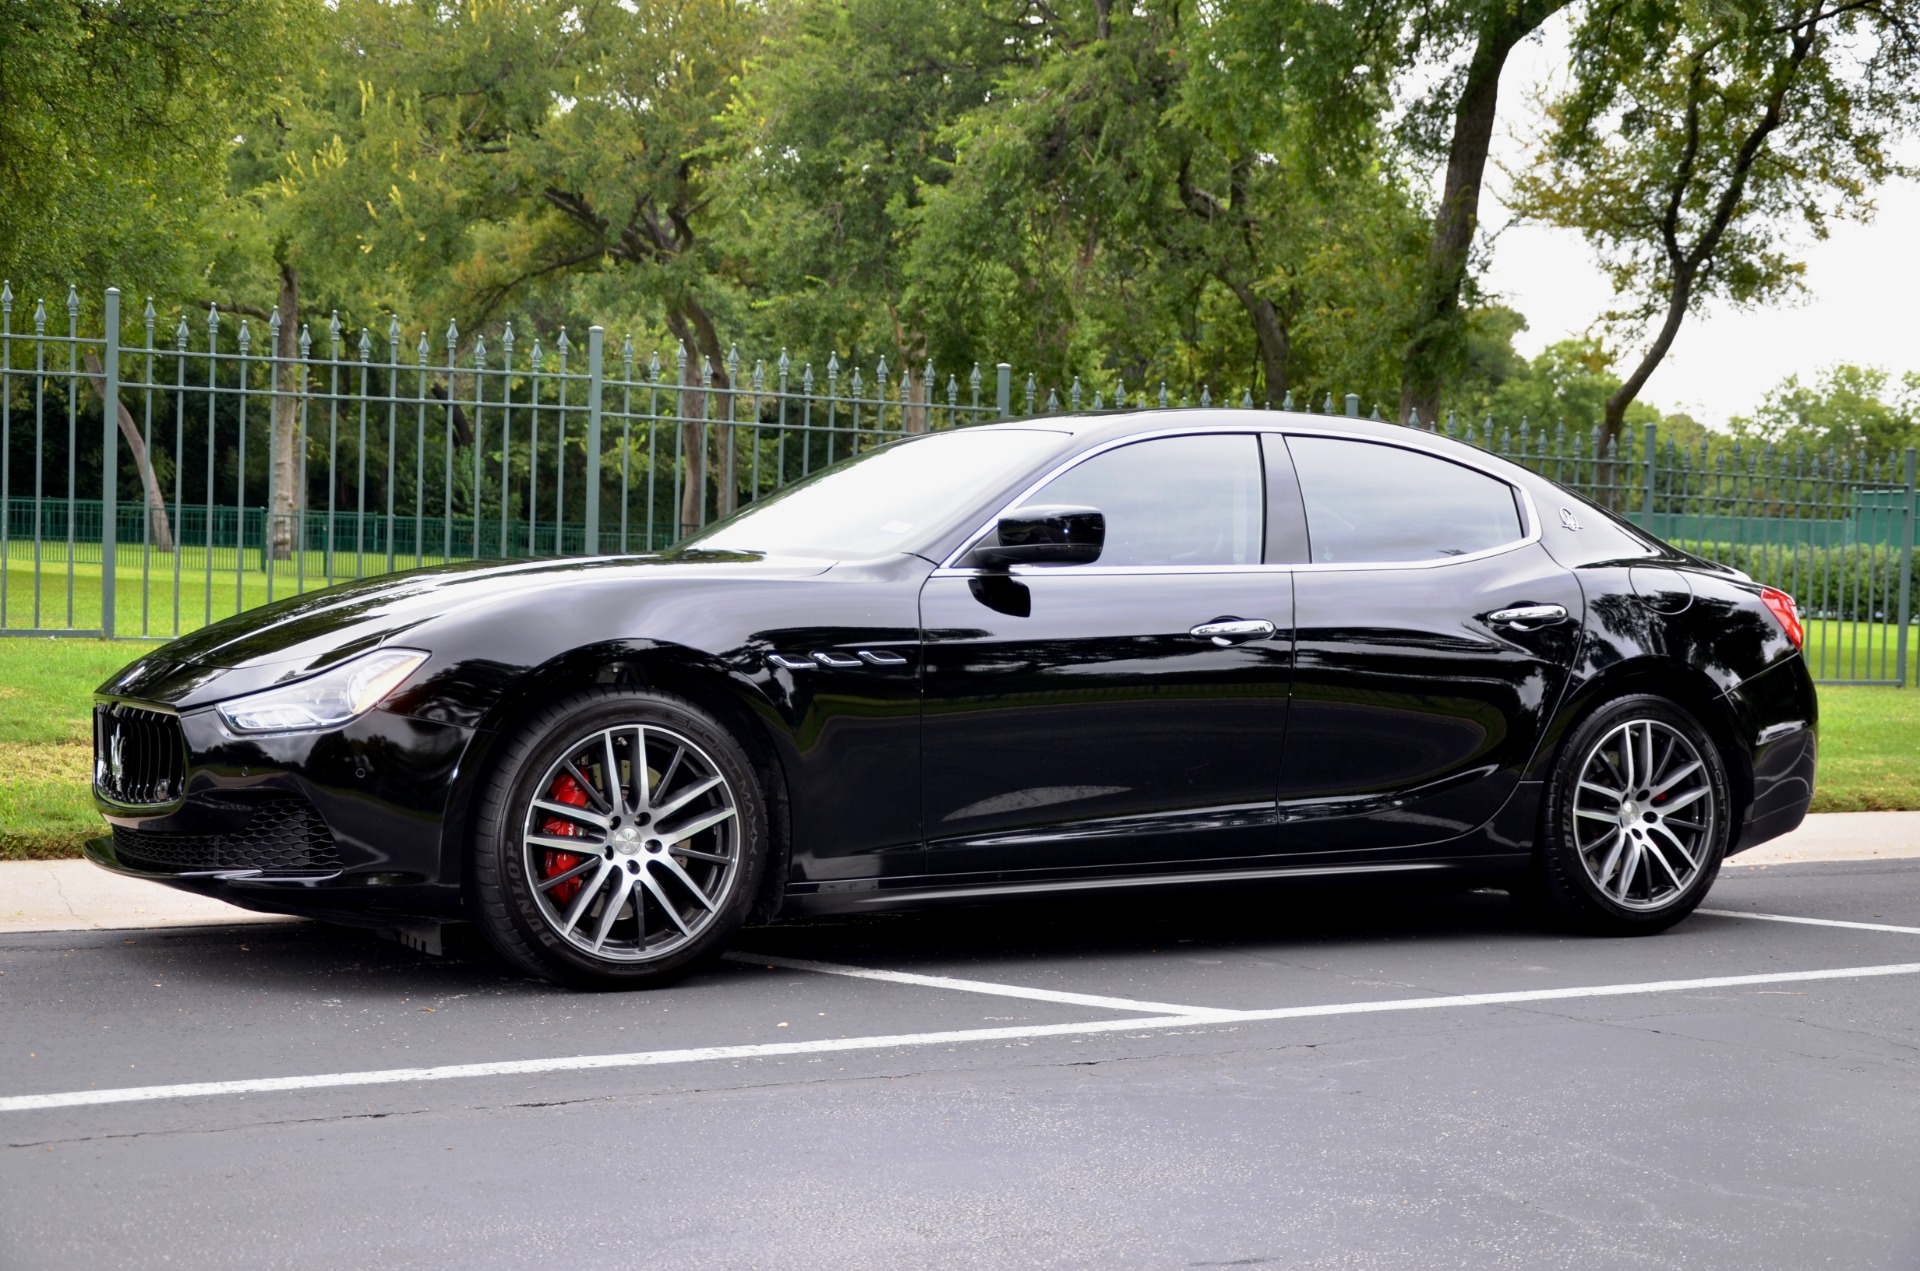 2014 maserati ghibli s q4 stock 14masghib for sale near. Black Bedroom Furniture Sets. Home Design Ideas